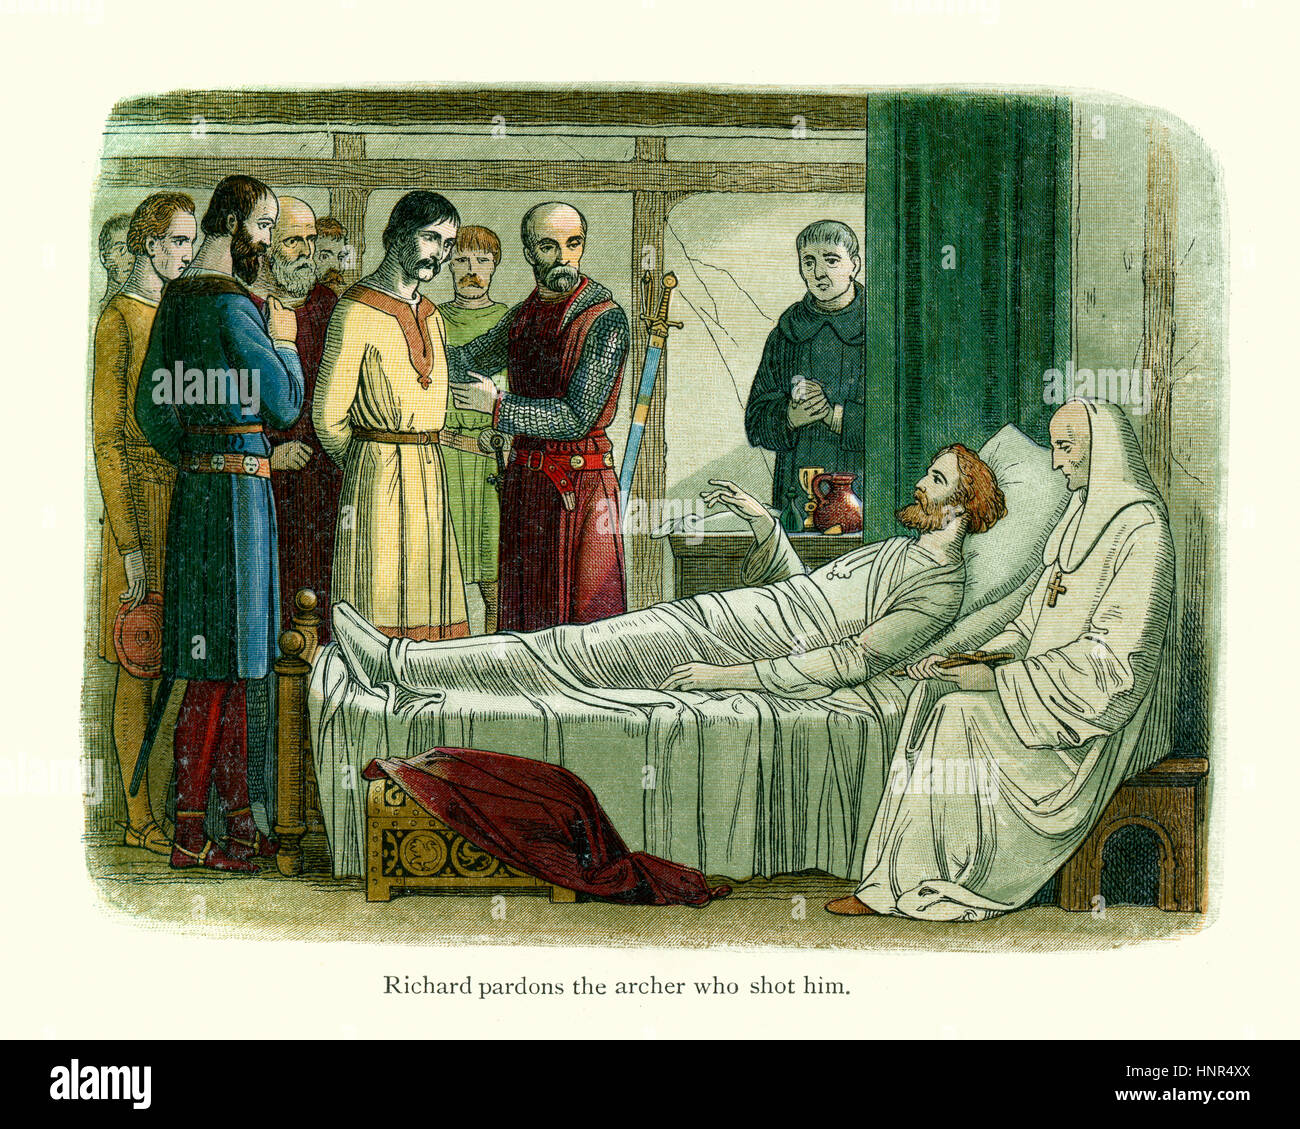 King Richard the Lionheart on his deathbed. Richard was killed while laying siege to the castle of Chalus-Chabrol. - Stock Image